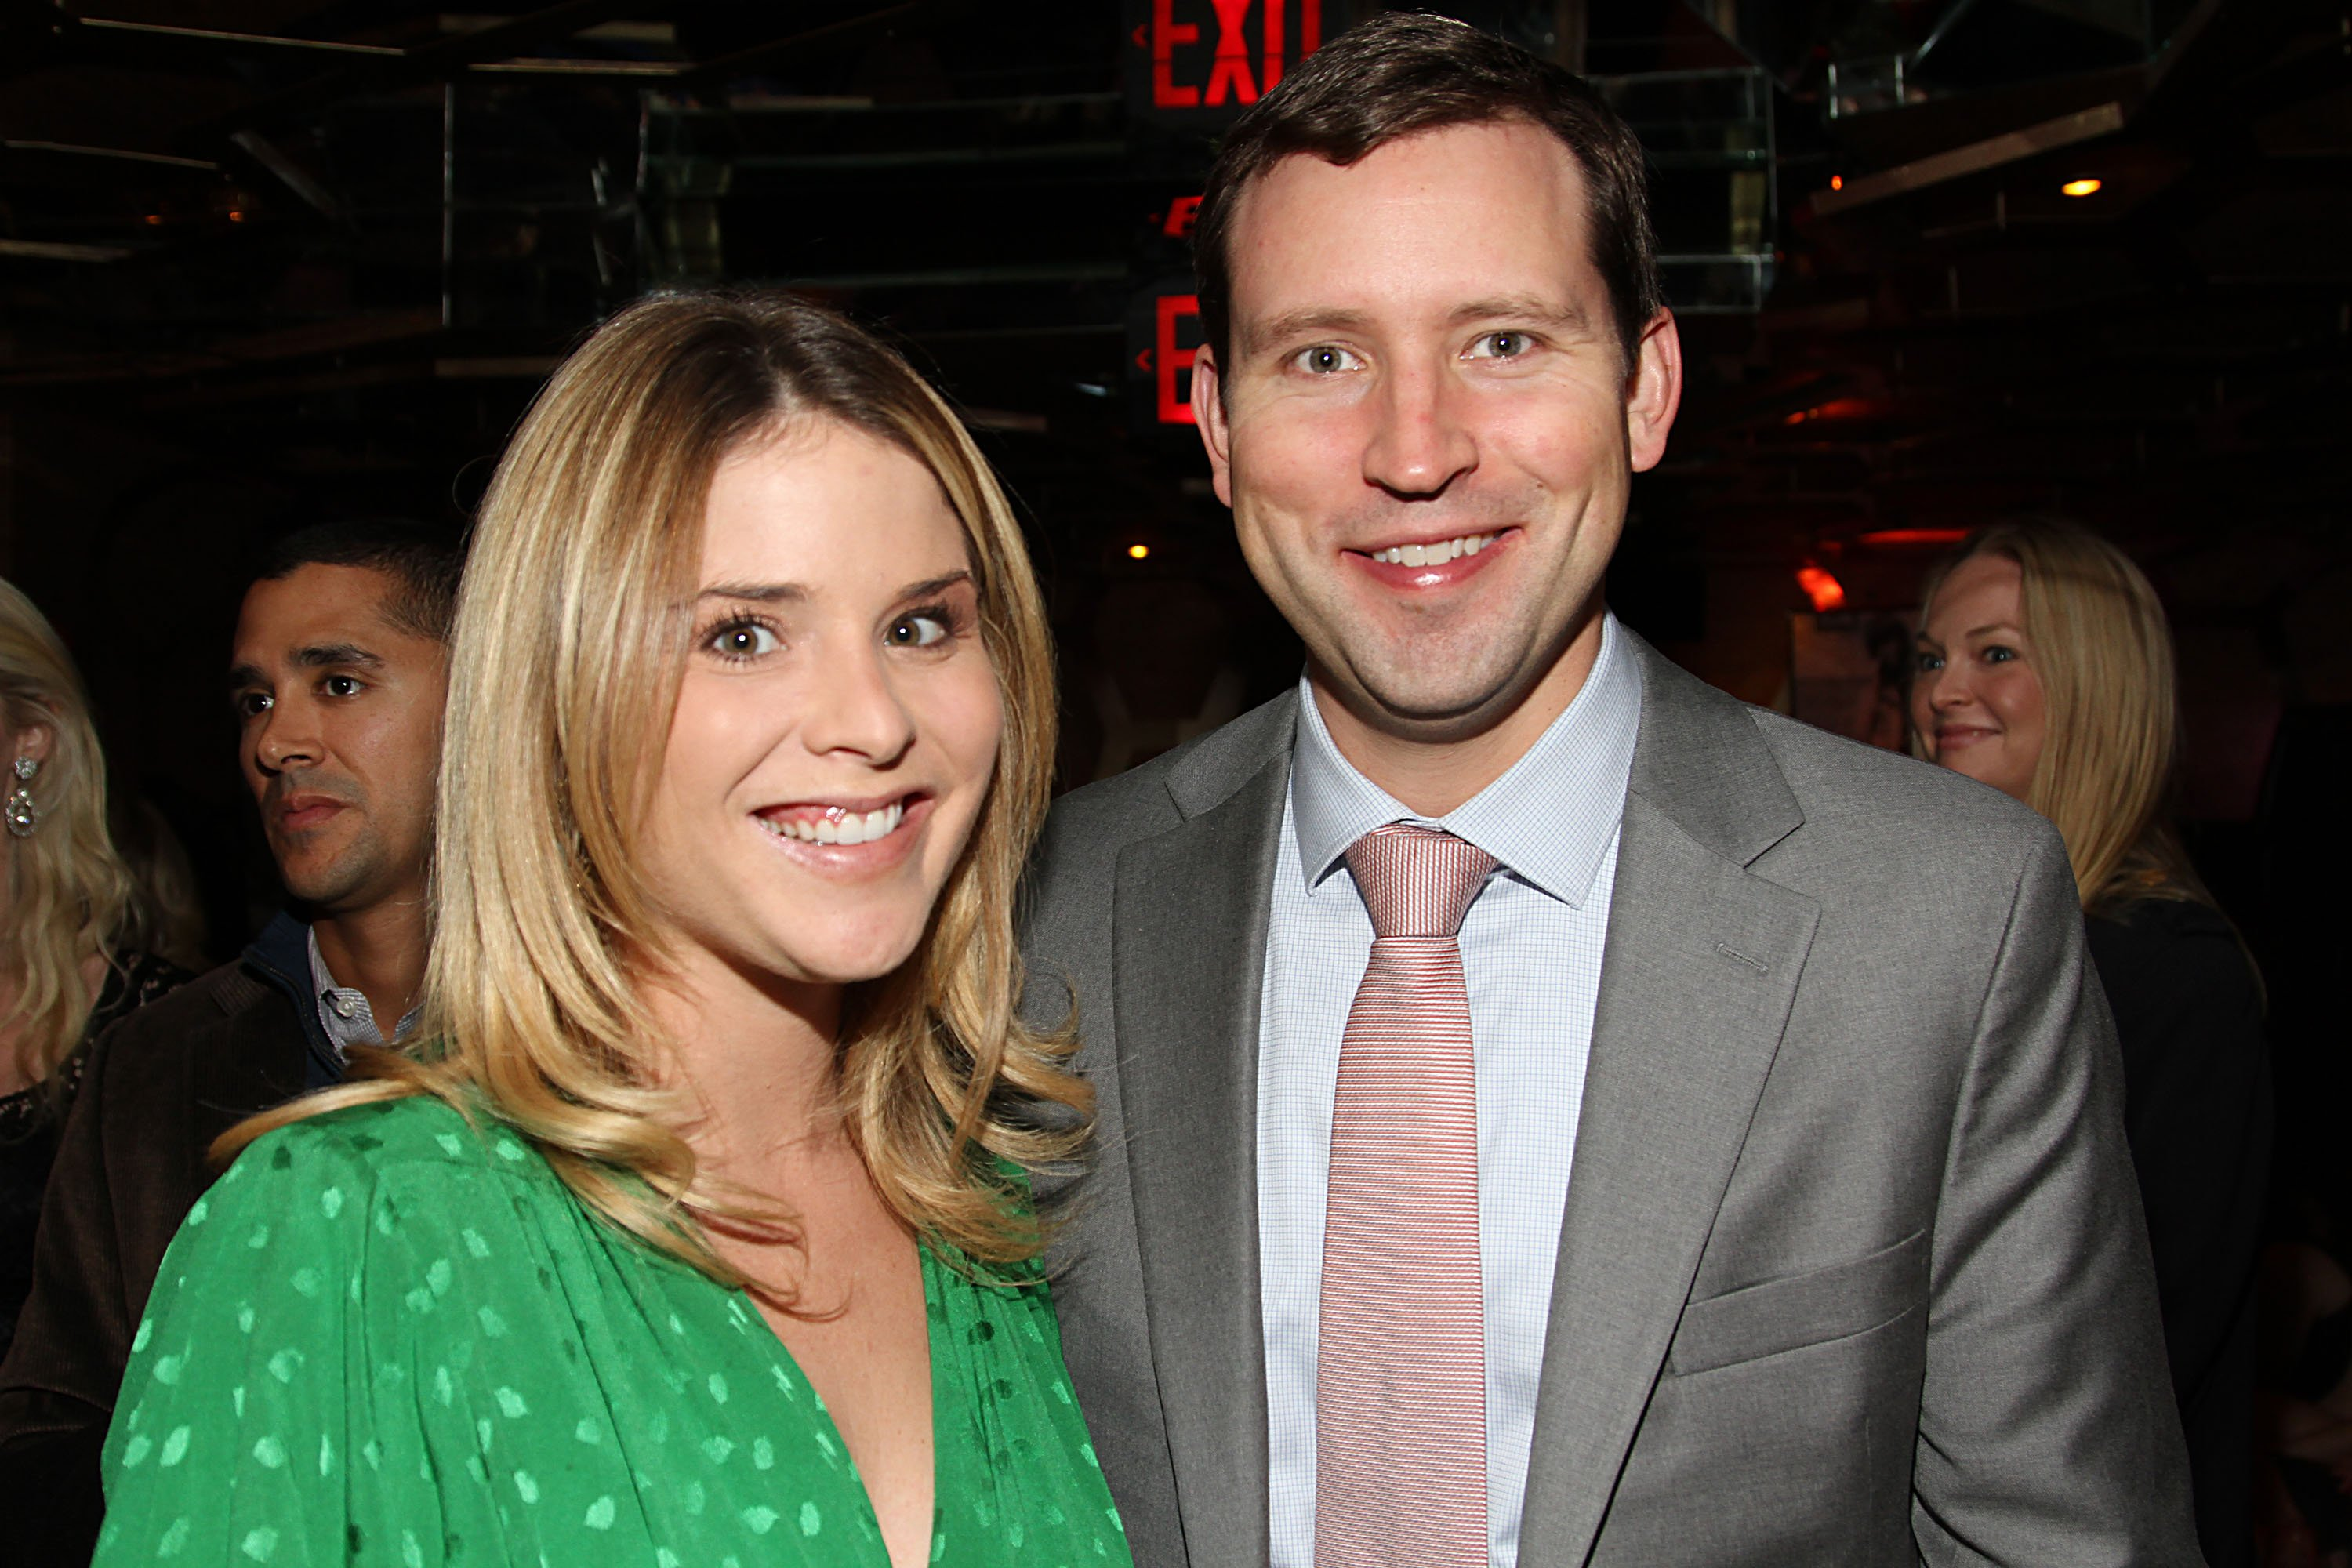 Jenna Bush Hager and Henry Hager during a 2012 event in New York City. | Photo: Getty Images